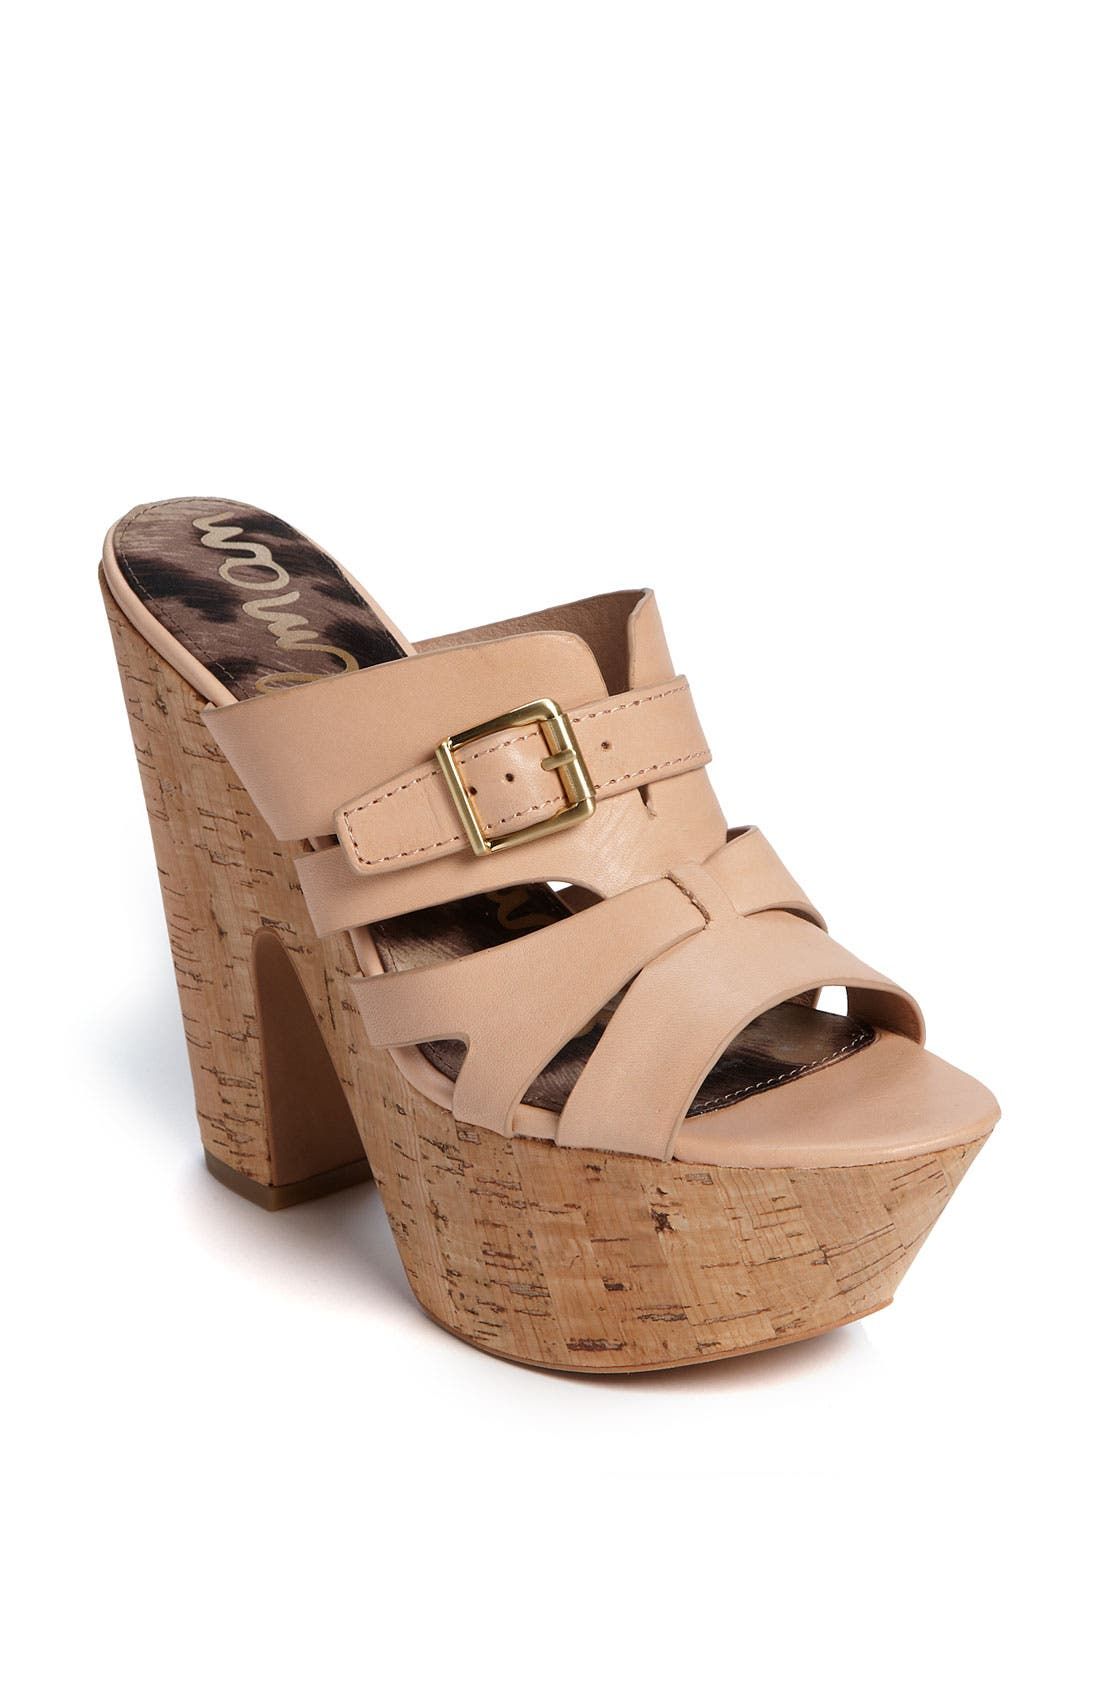 Alternate Image 1 Selected - Sam Edelman 'Chase' Sandal